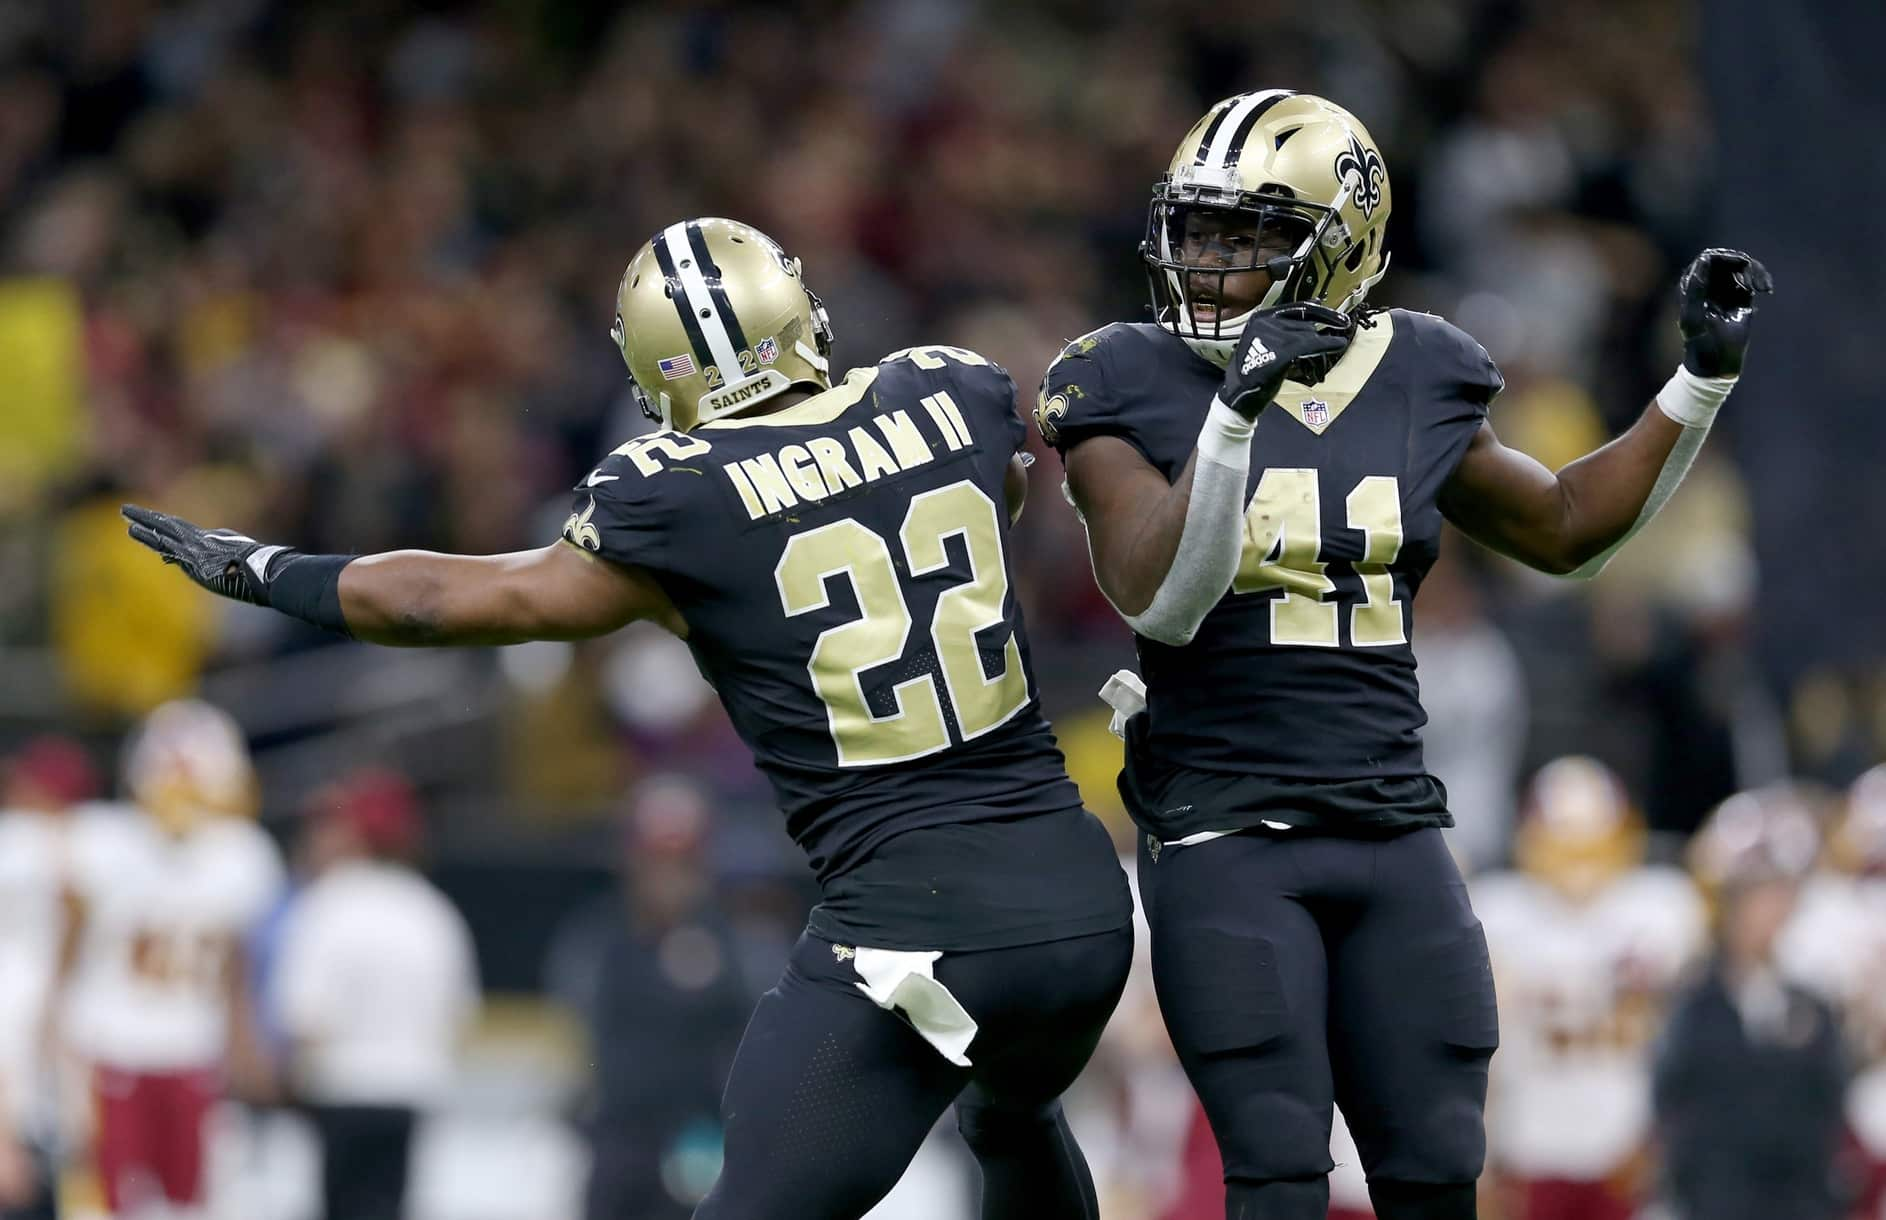 Kamara and Ingram put up huge numbers over the past years - and this year Ingram will be replaced by Murray.